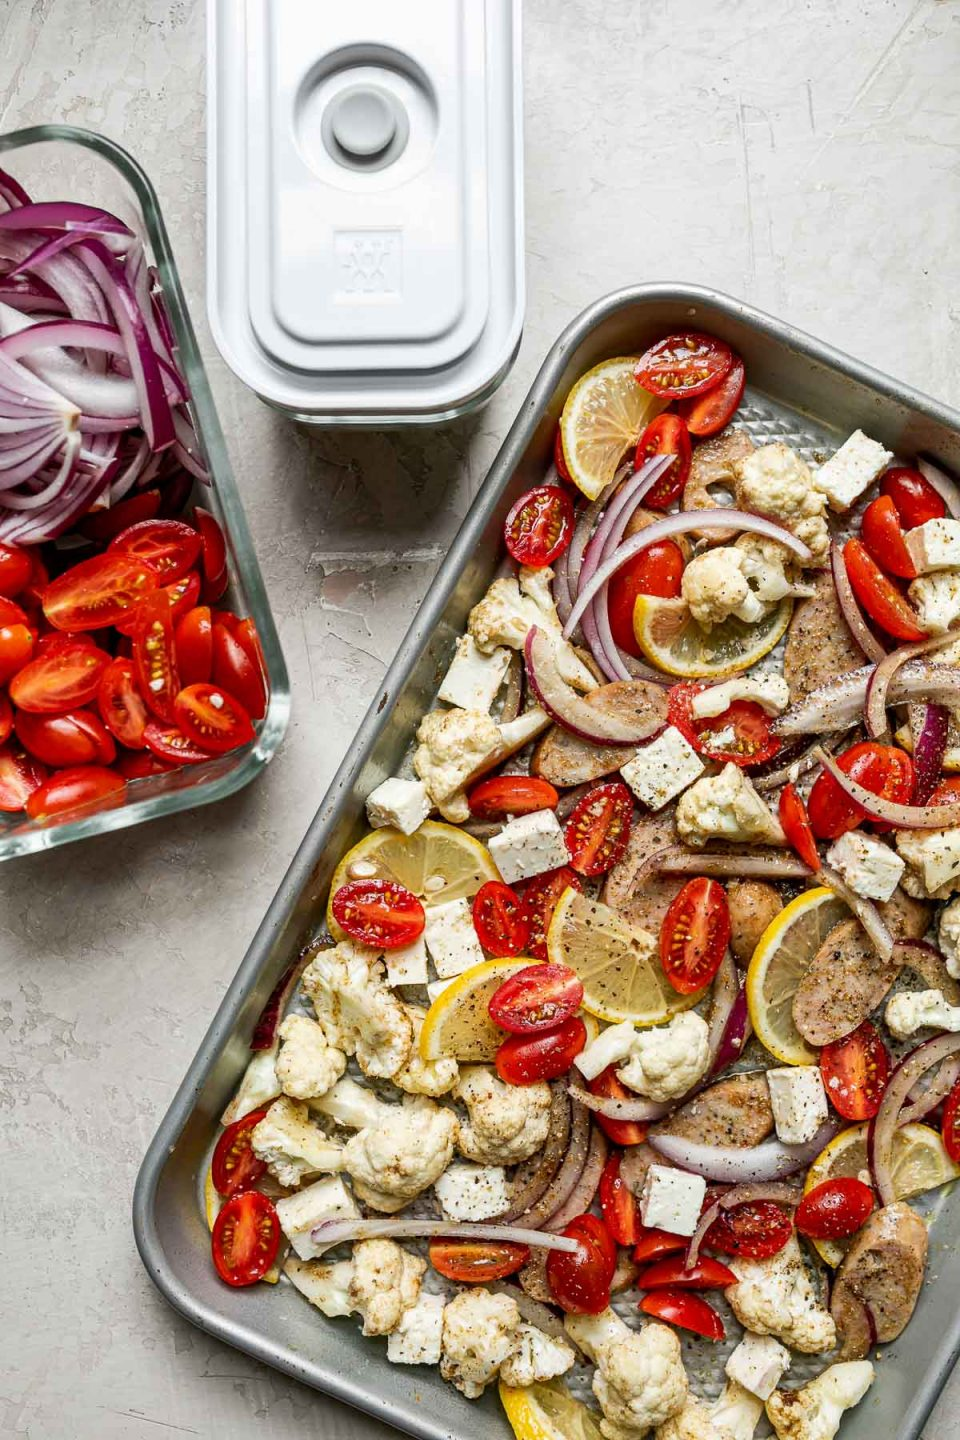 Sheet Pan Chicken Sausage and Veggies ingredients arranged on a silver quarter sheet pan atop a creamy cement surface alongside 2 Zwilling Fresh & Save containers with tomatoes & red onions.